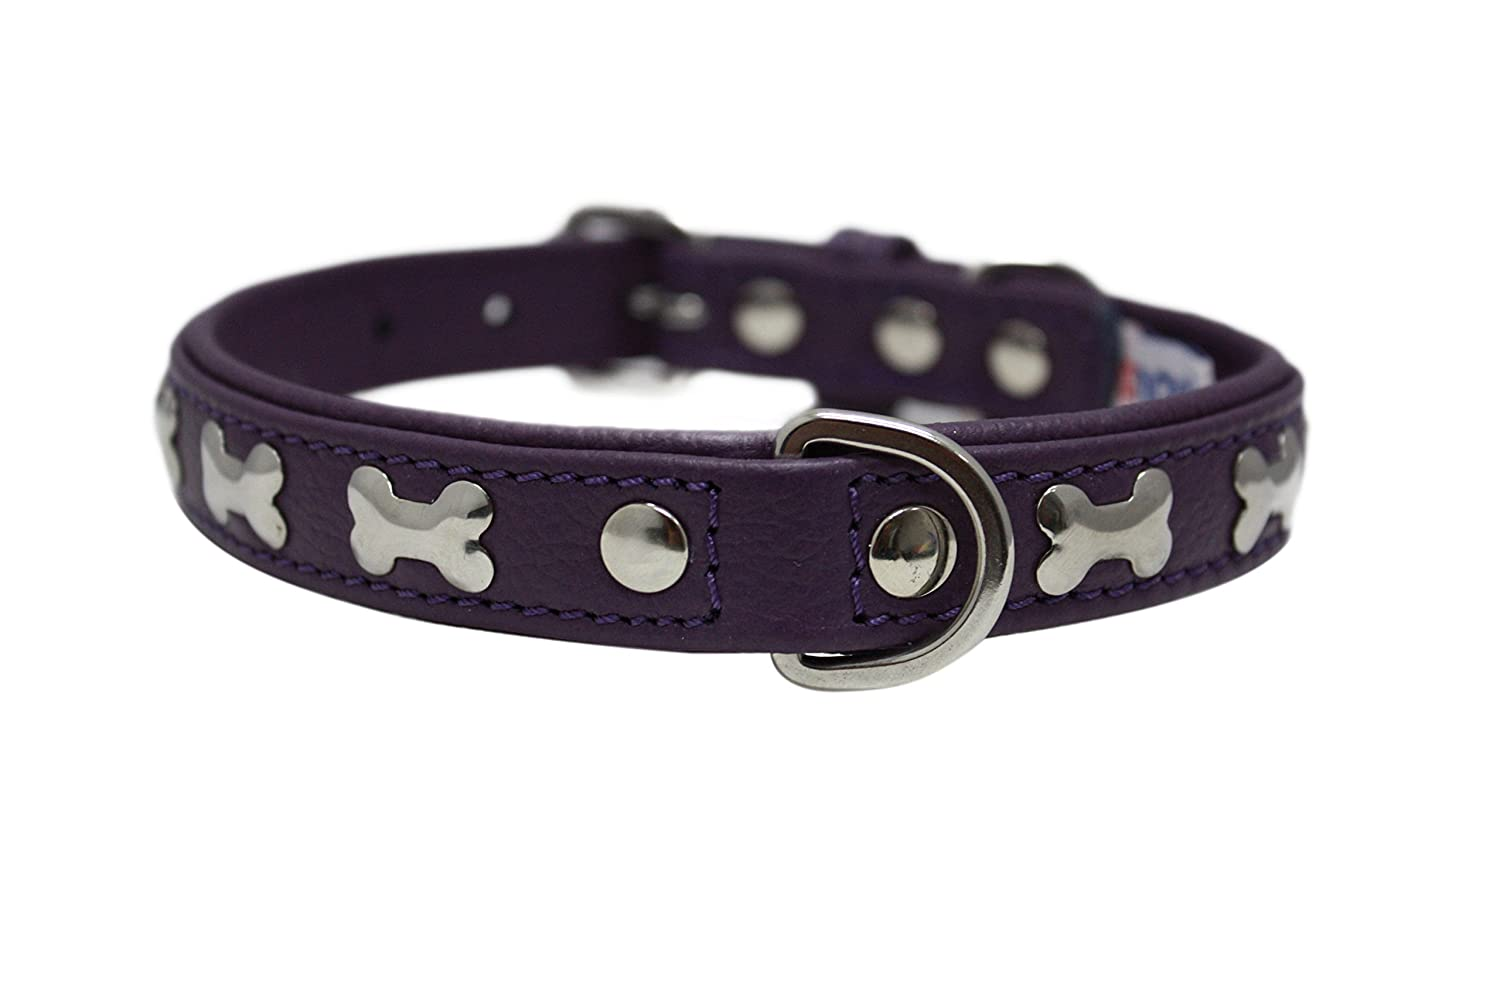 Leather Bones Dog Collar Padded Double-Ply Riveted Settings 16 x 3 4 Purple Leather (redterdam Bones) Neck Size  11.5-14